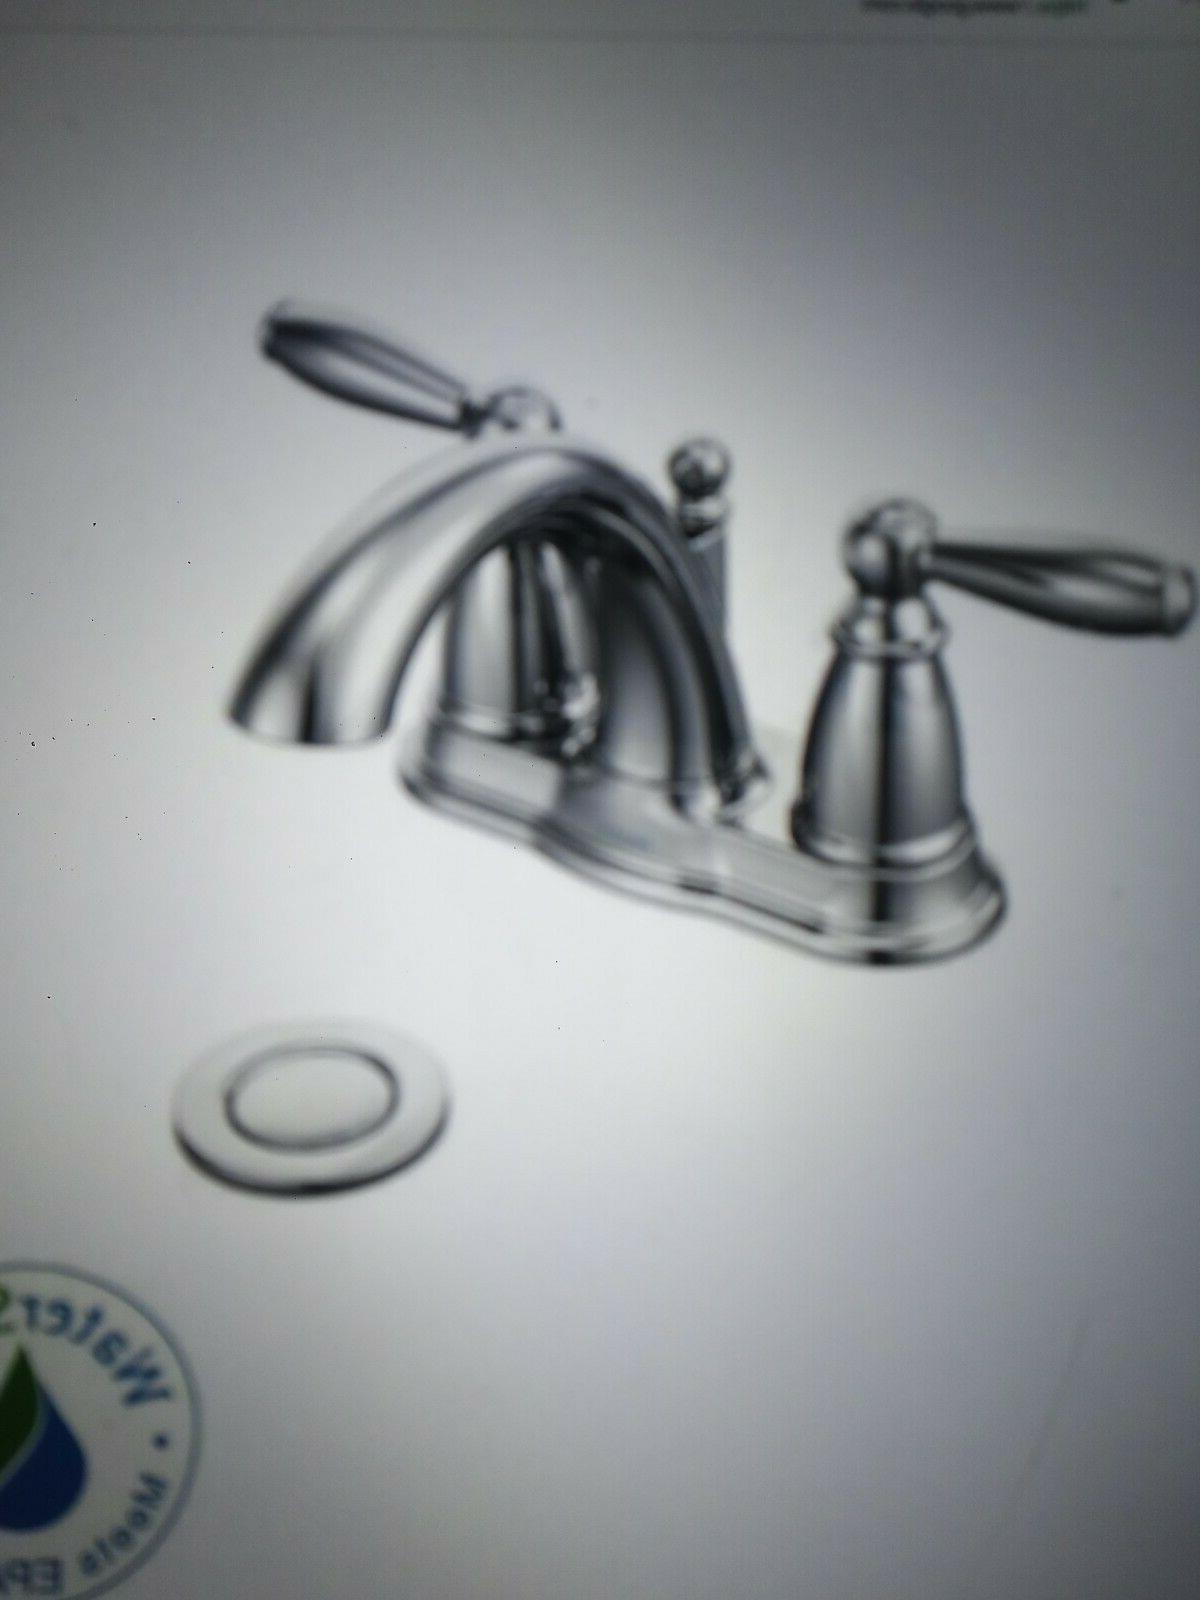 6610bn brantford two handle centerset bathroom faucet